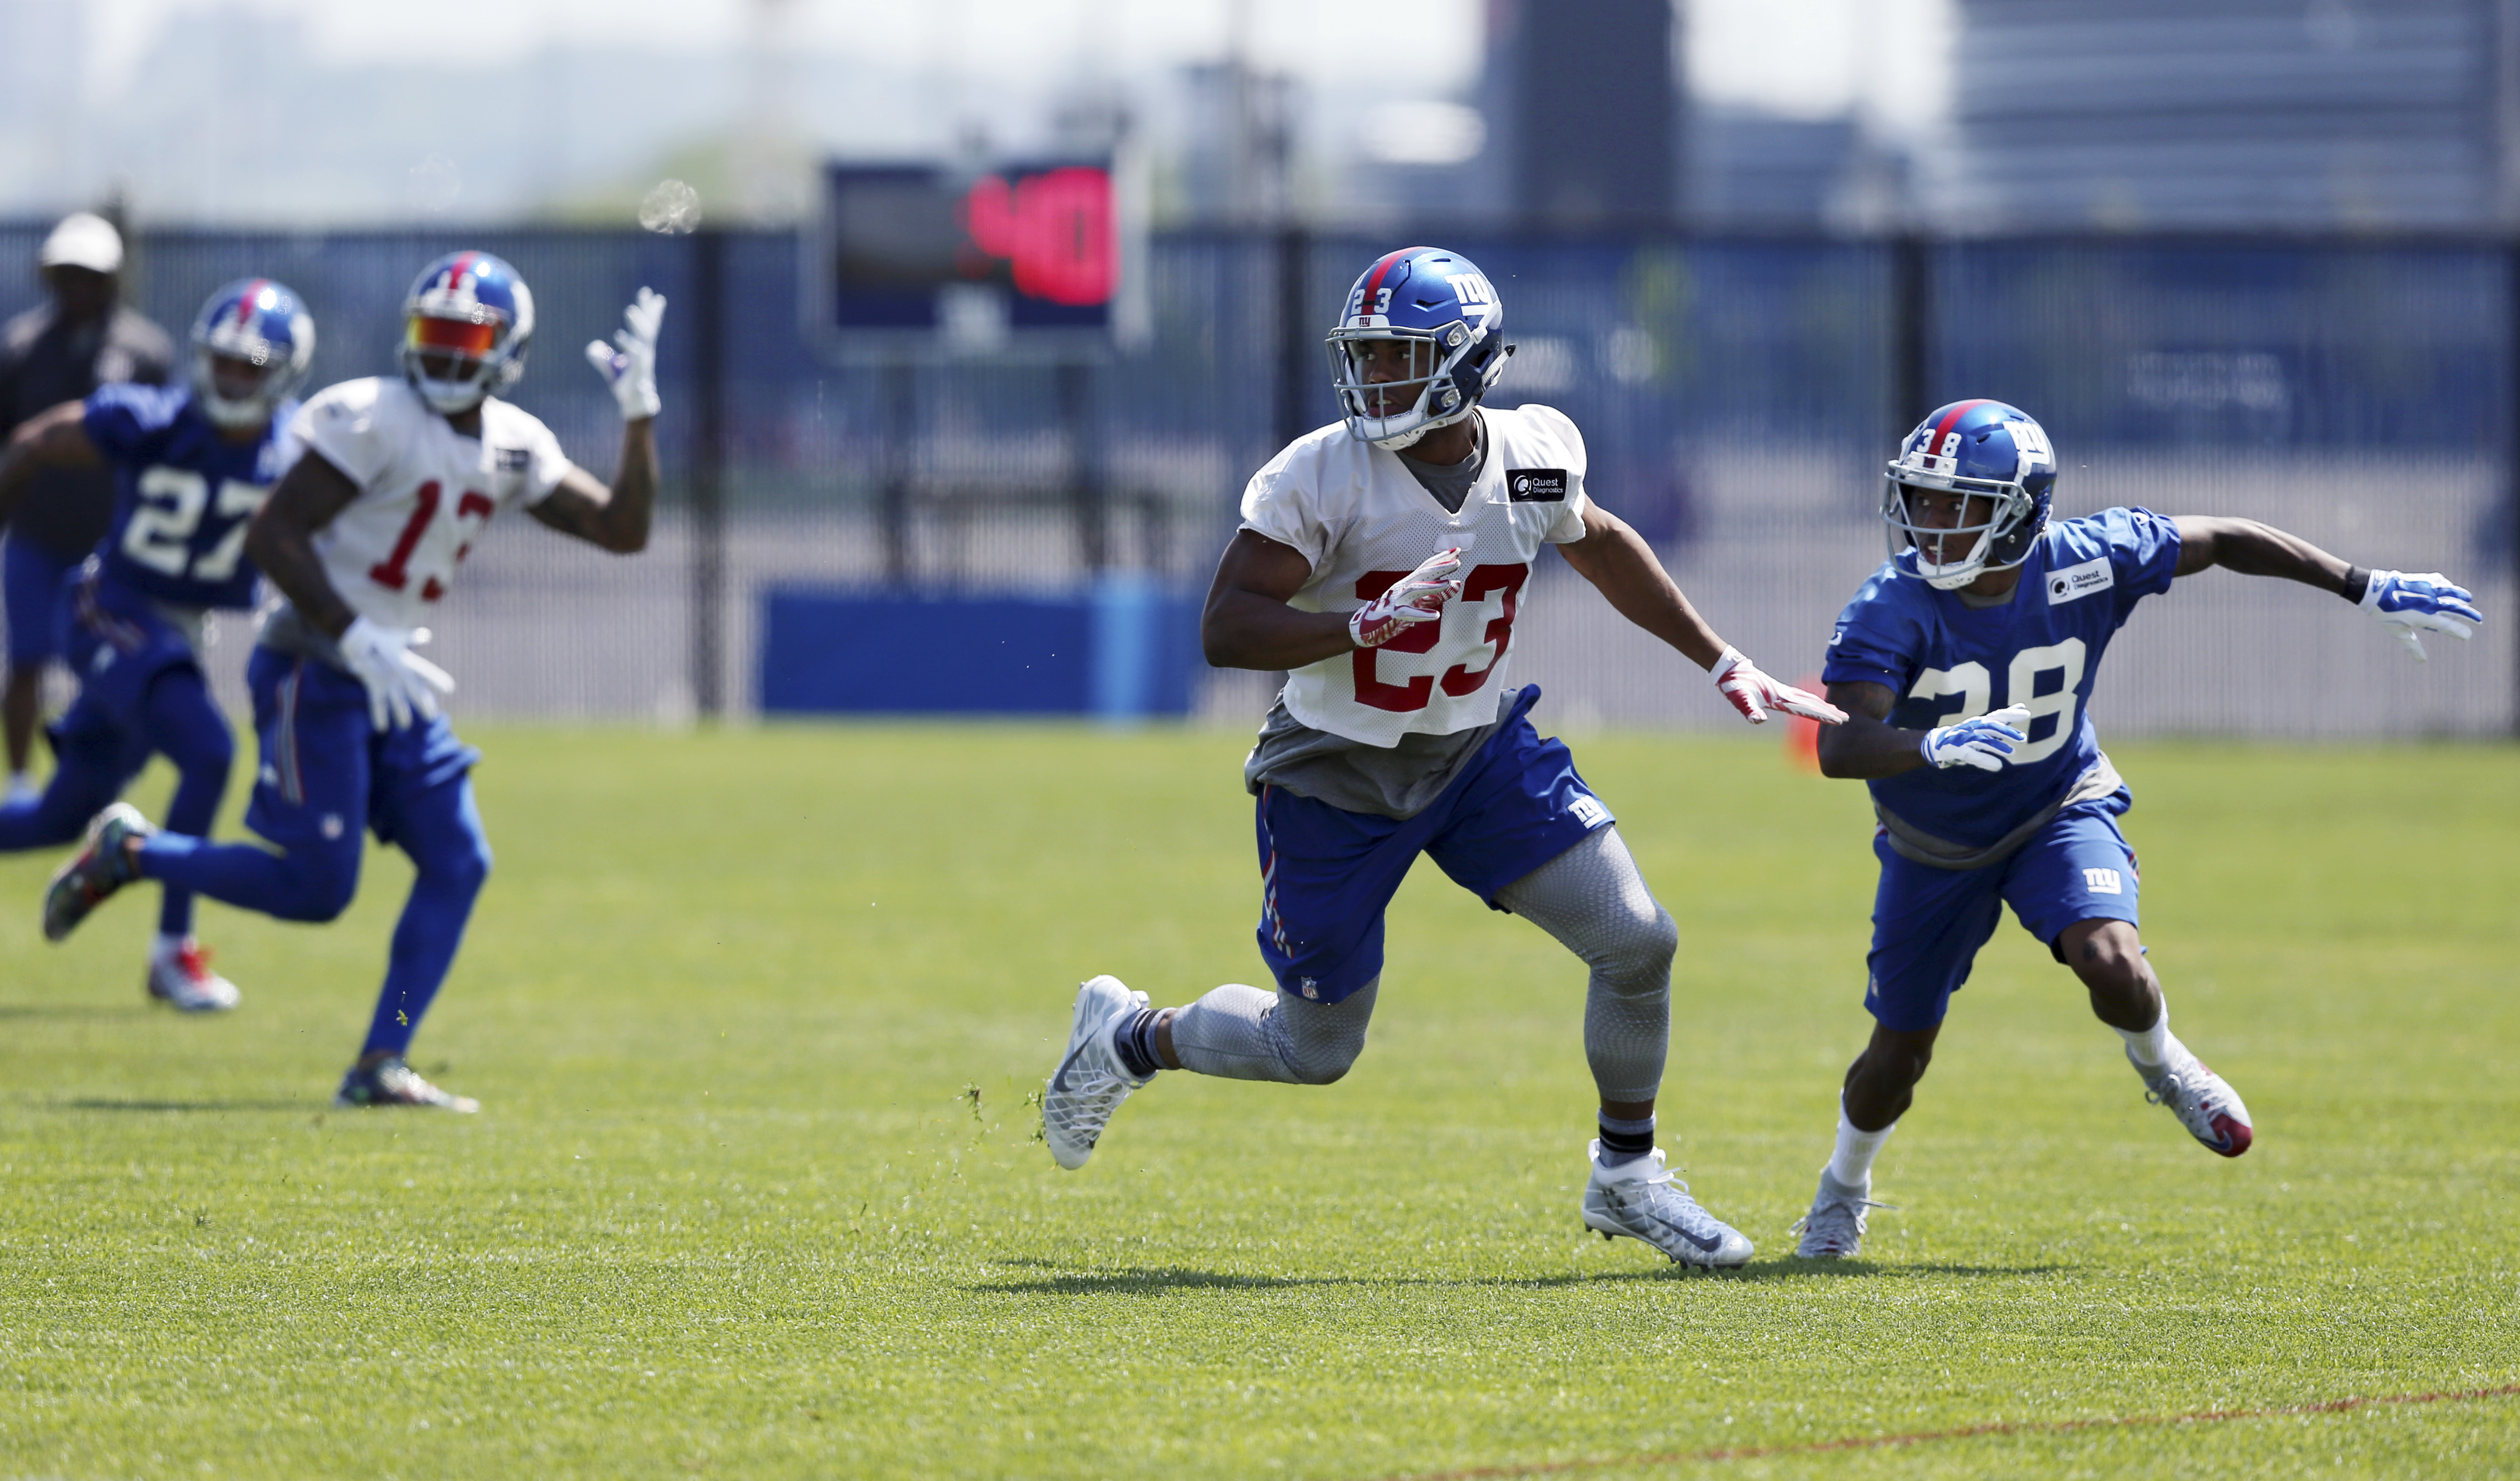 New York Giants running back Rashad Jennings (23) and corner back Donte Deayon (38) run together during football practice Monday, May 23, 2016 in East Rutherford, N.J. (AP Photo/Mel Evans)